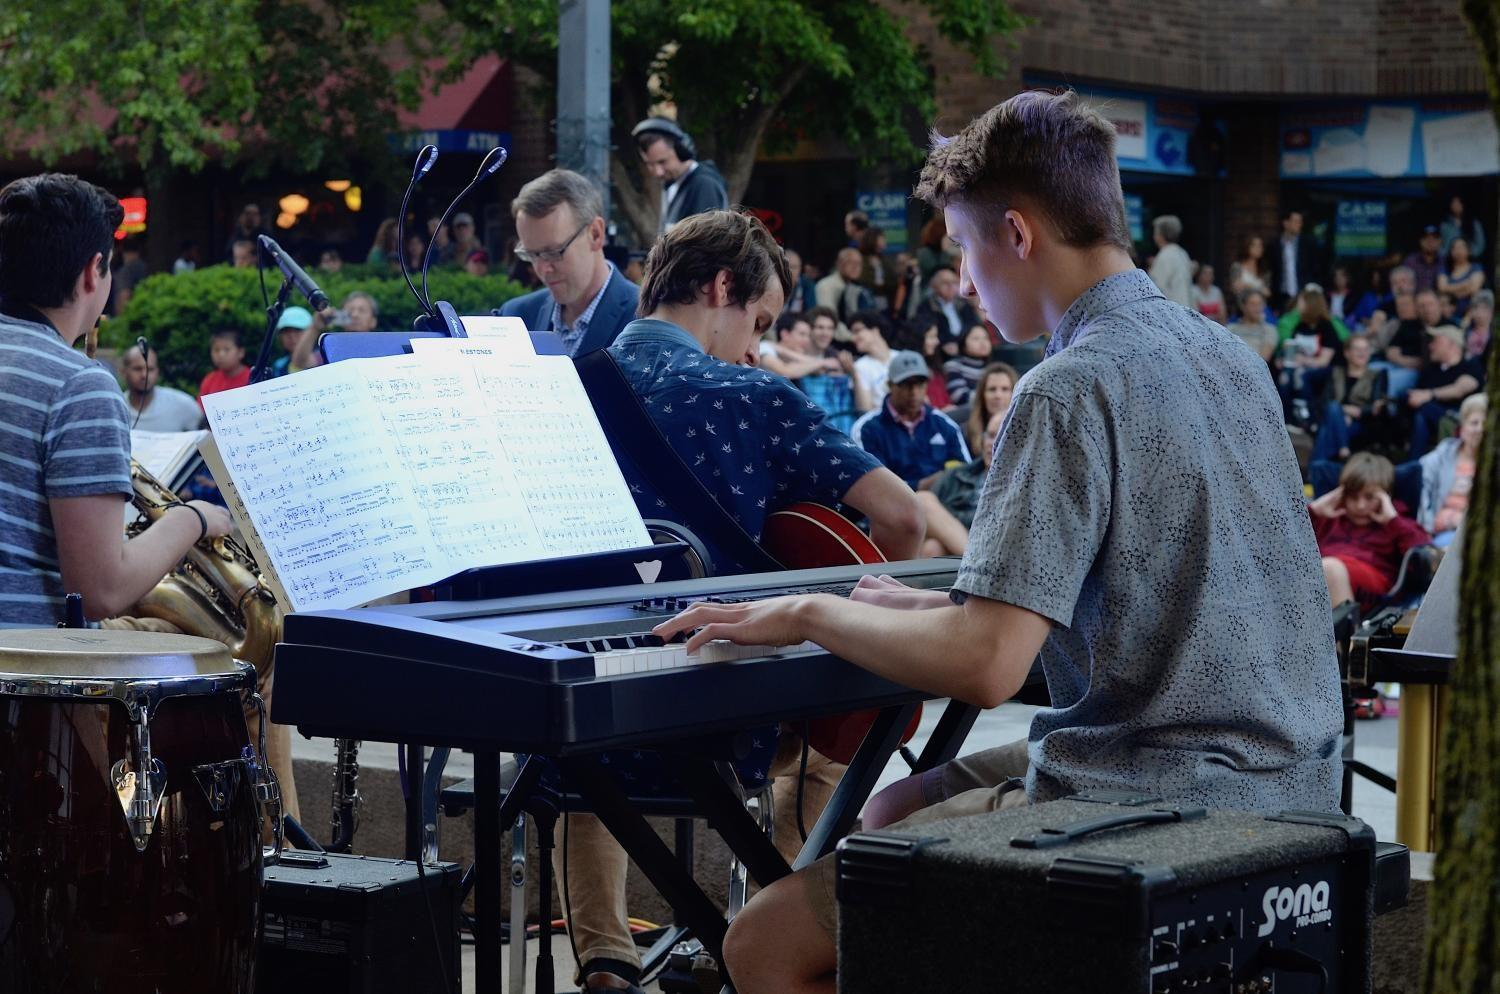 Andrew Burgess '20 concentrates on playing the keyboard as Rich Medd conducts the band through a piece.